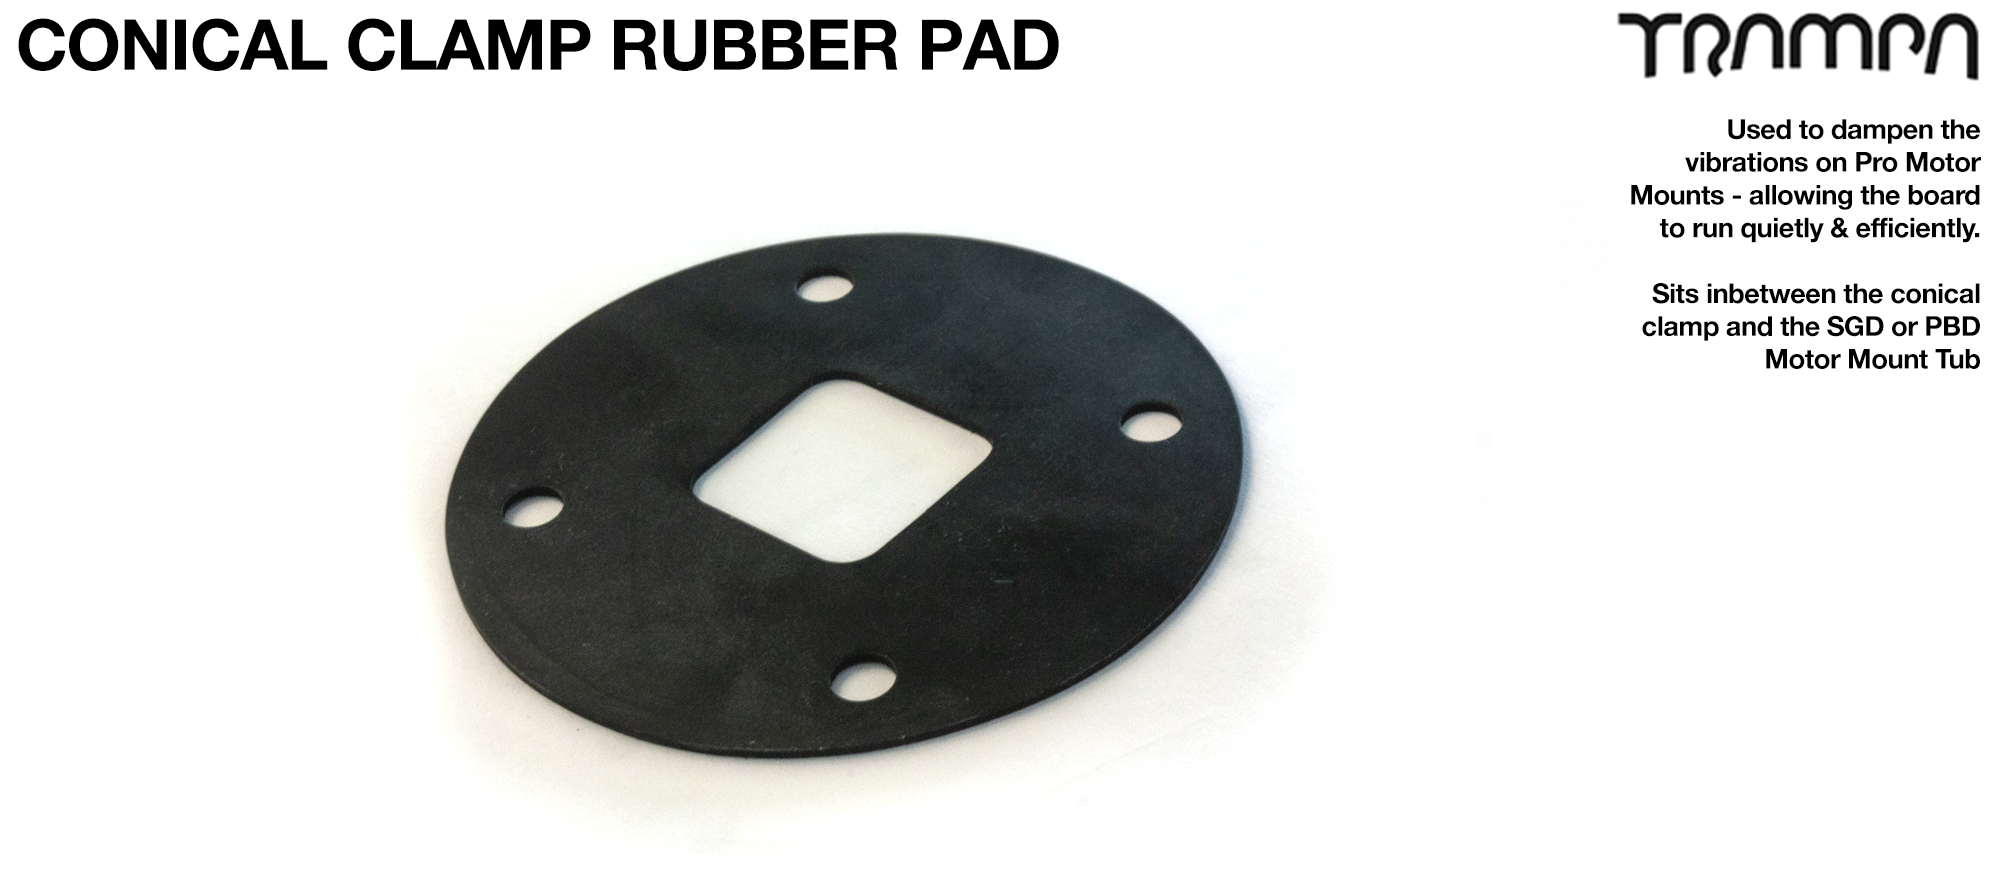 PRO Mountainboard Motor Mount Rubber pad for Conical Clamps - Fits both BELT & SPUR Gear Drive Motor Mounts